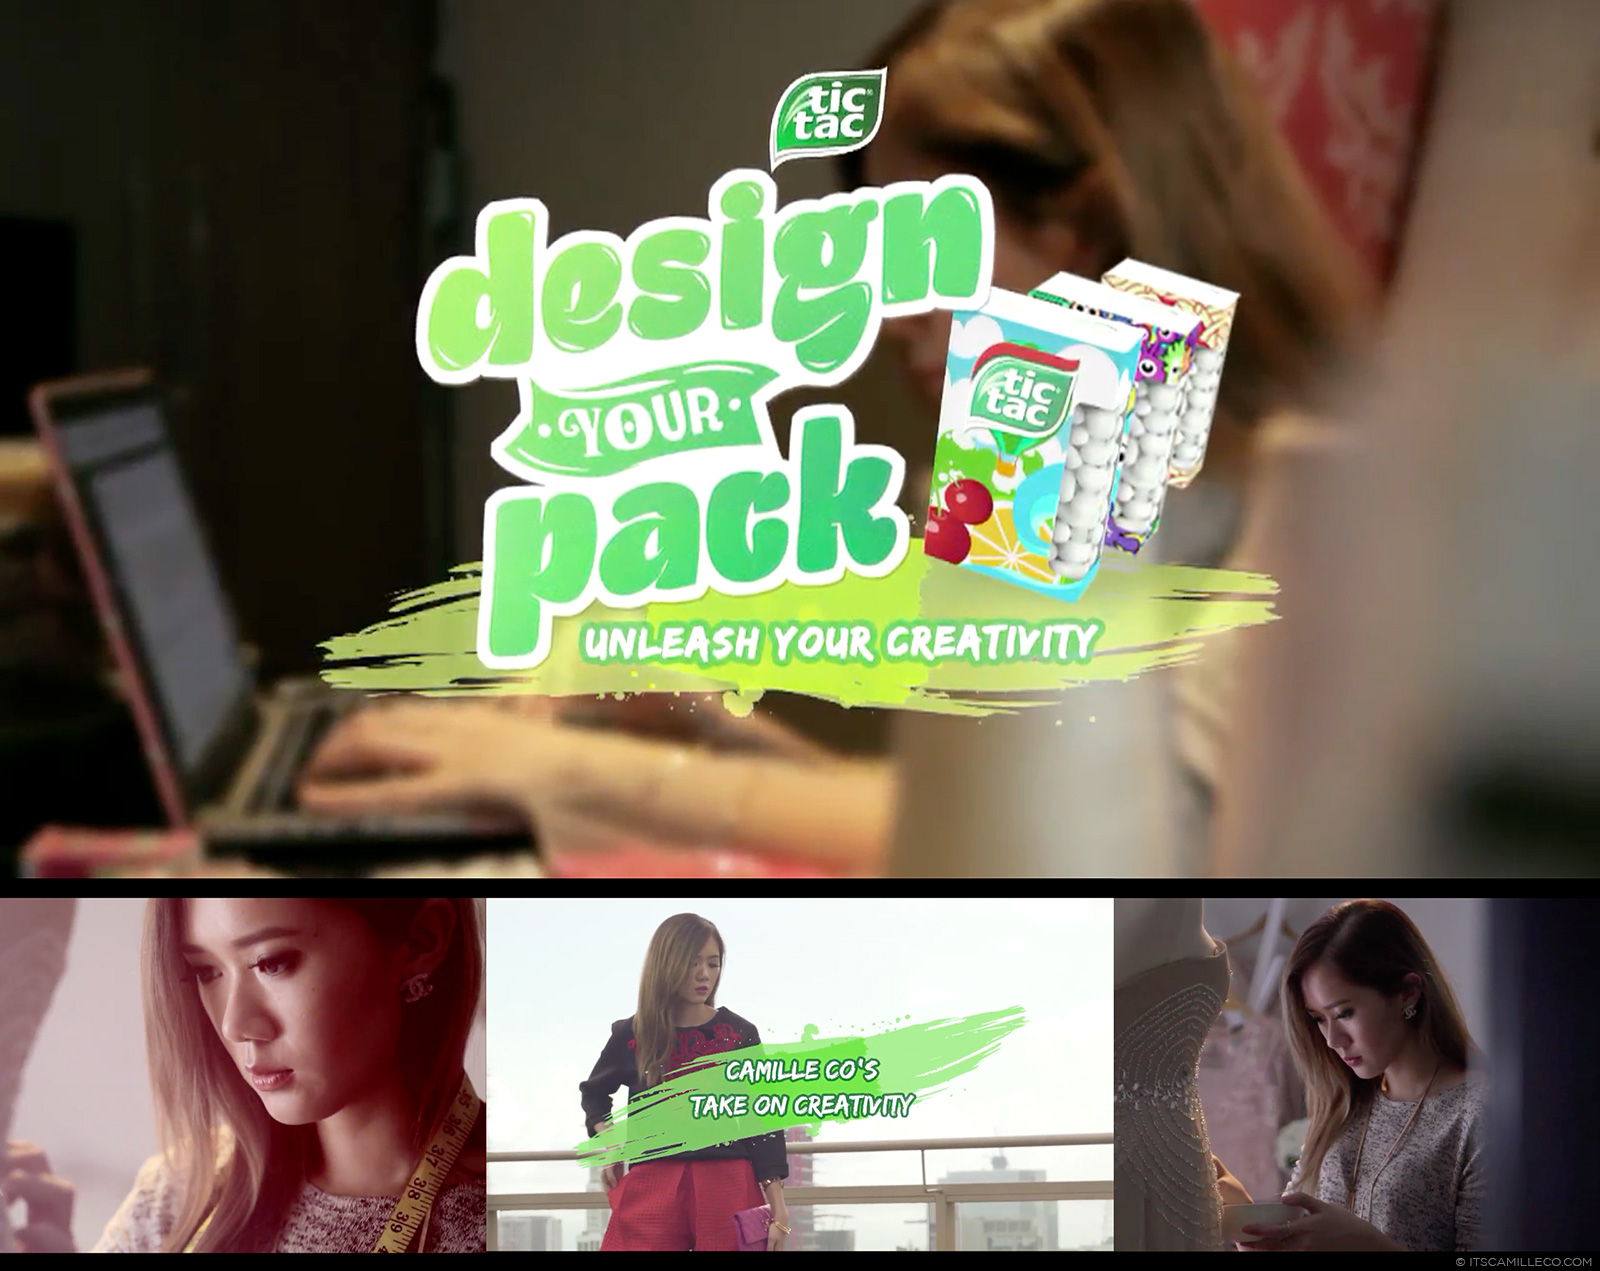 Tic Tac Design Your Pack By Camille Co | www.itscamilleco.com